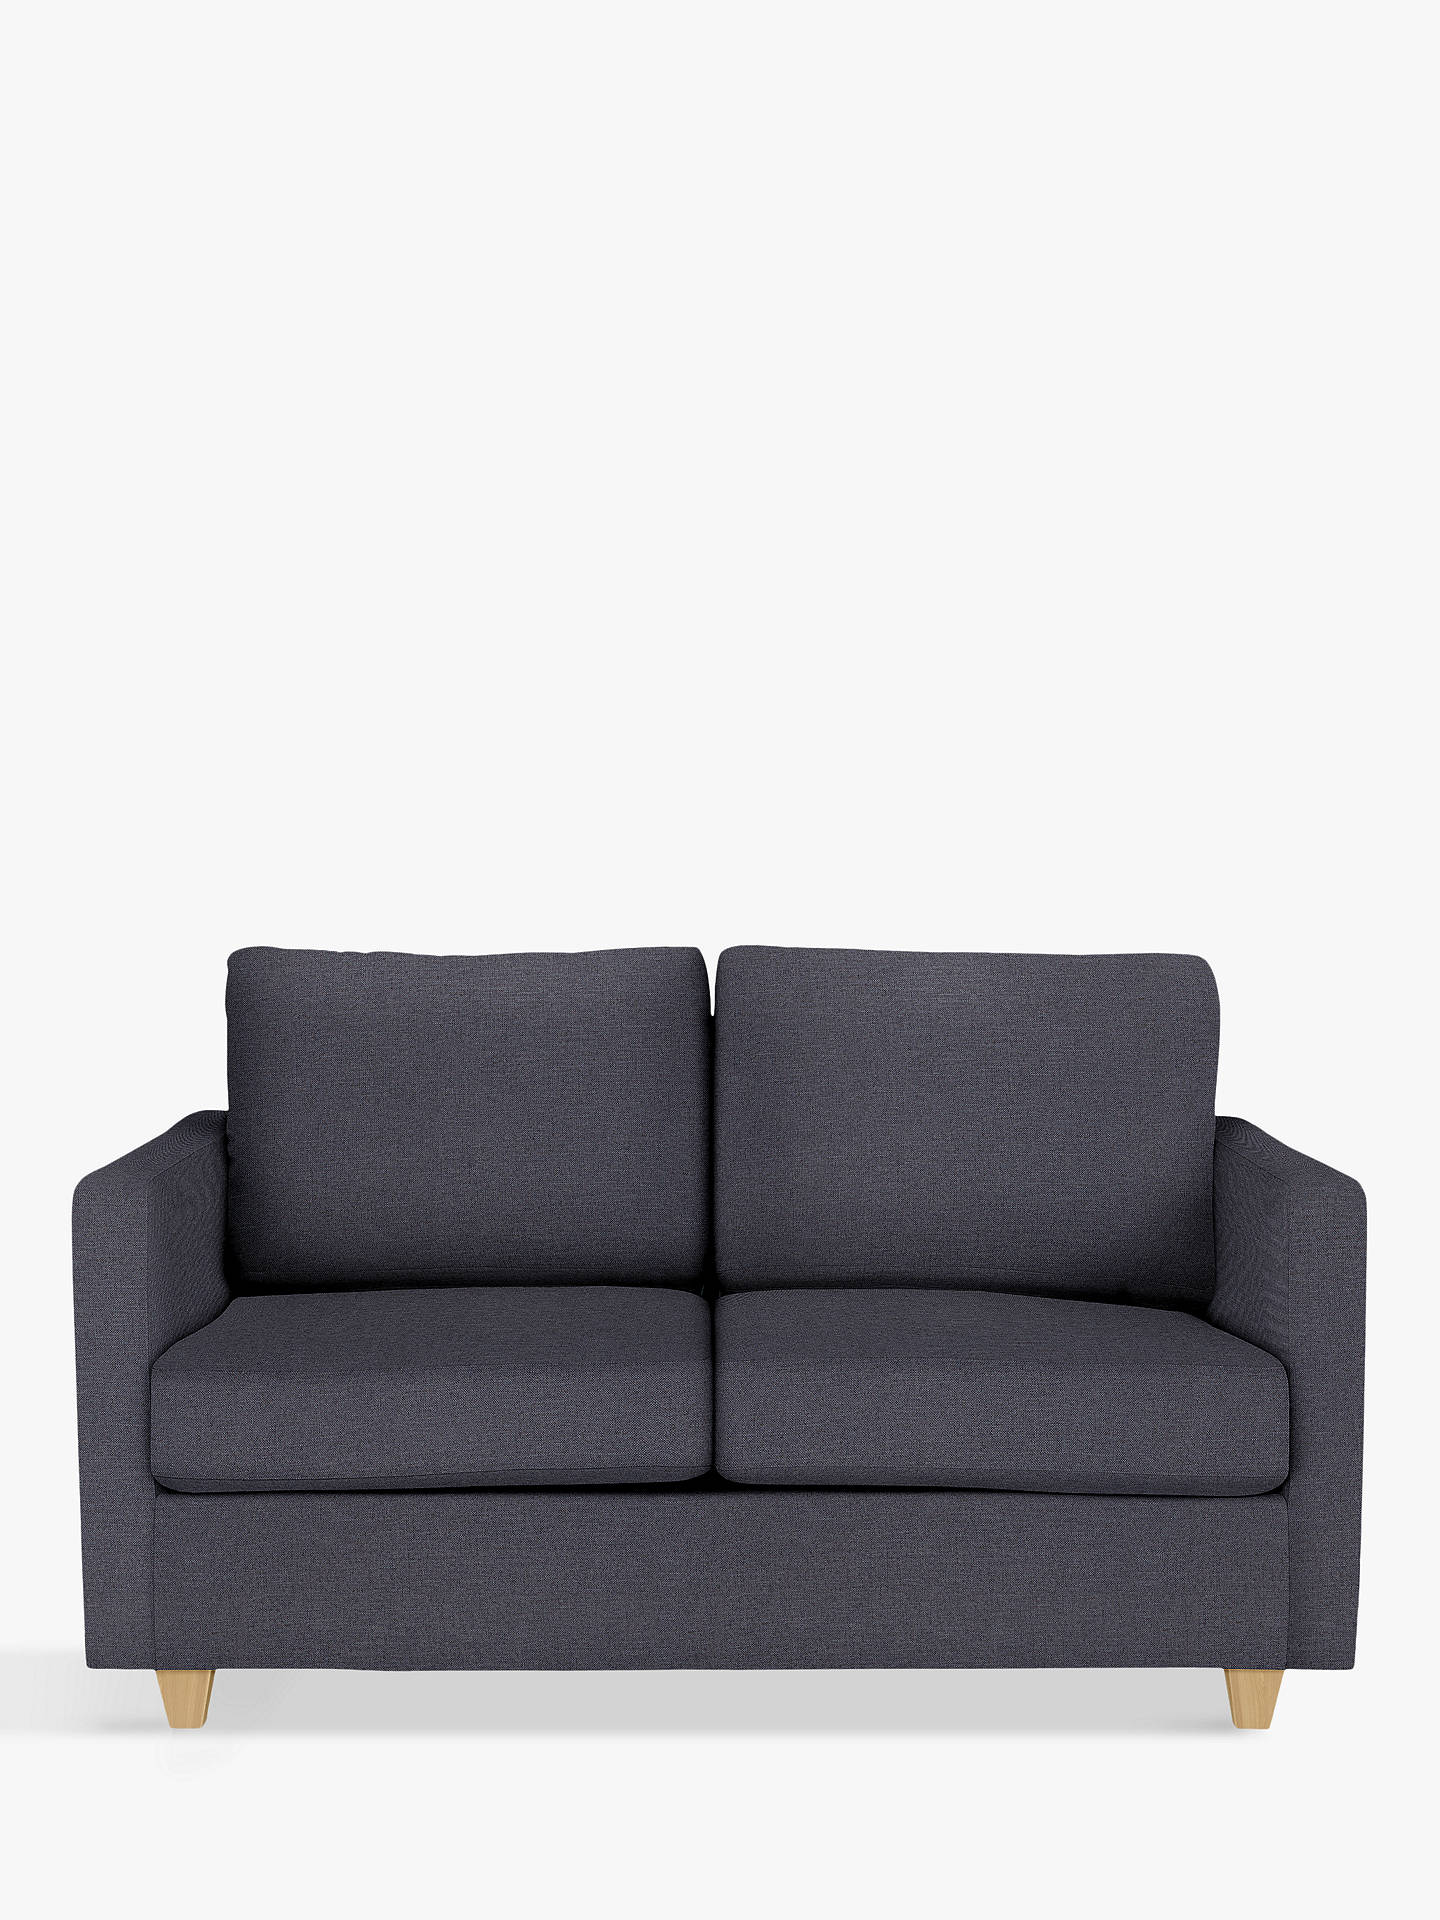 Strange John Lewis Partners Barlow Small 2 Seater Sofa Bed With Pocket Sprung Mattress Light Leg Bevan Navy Squirreltailoven Fun Painted Chair Ideas Images Squirreltailovenorg